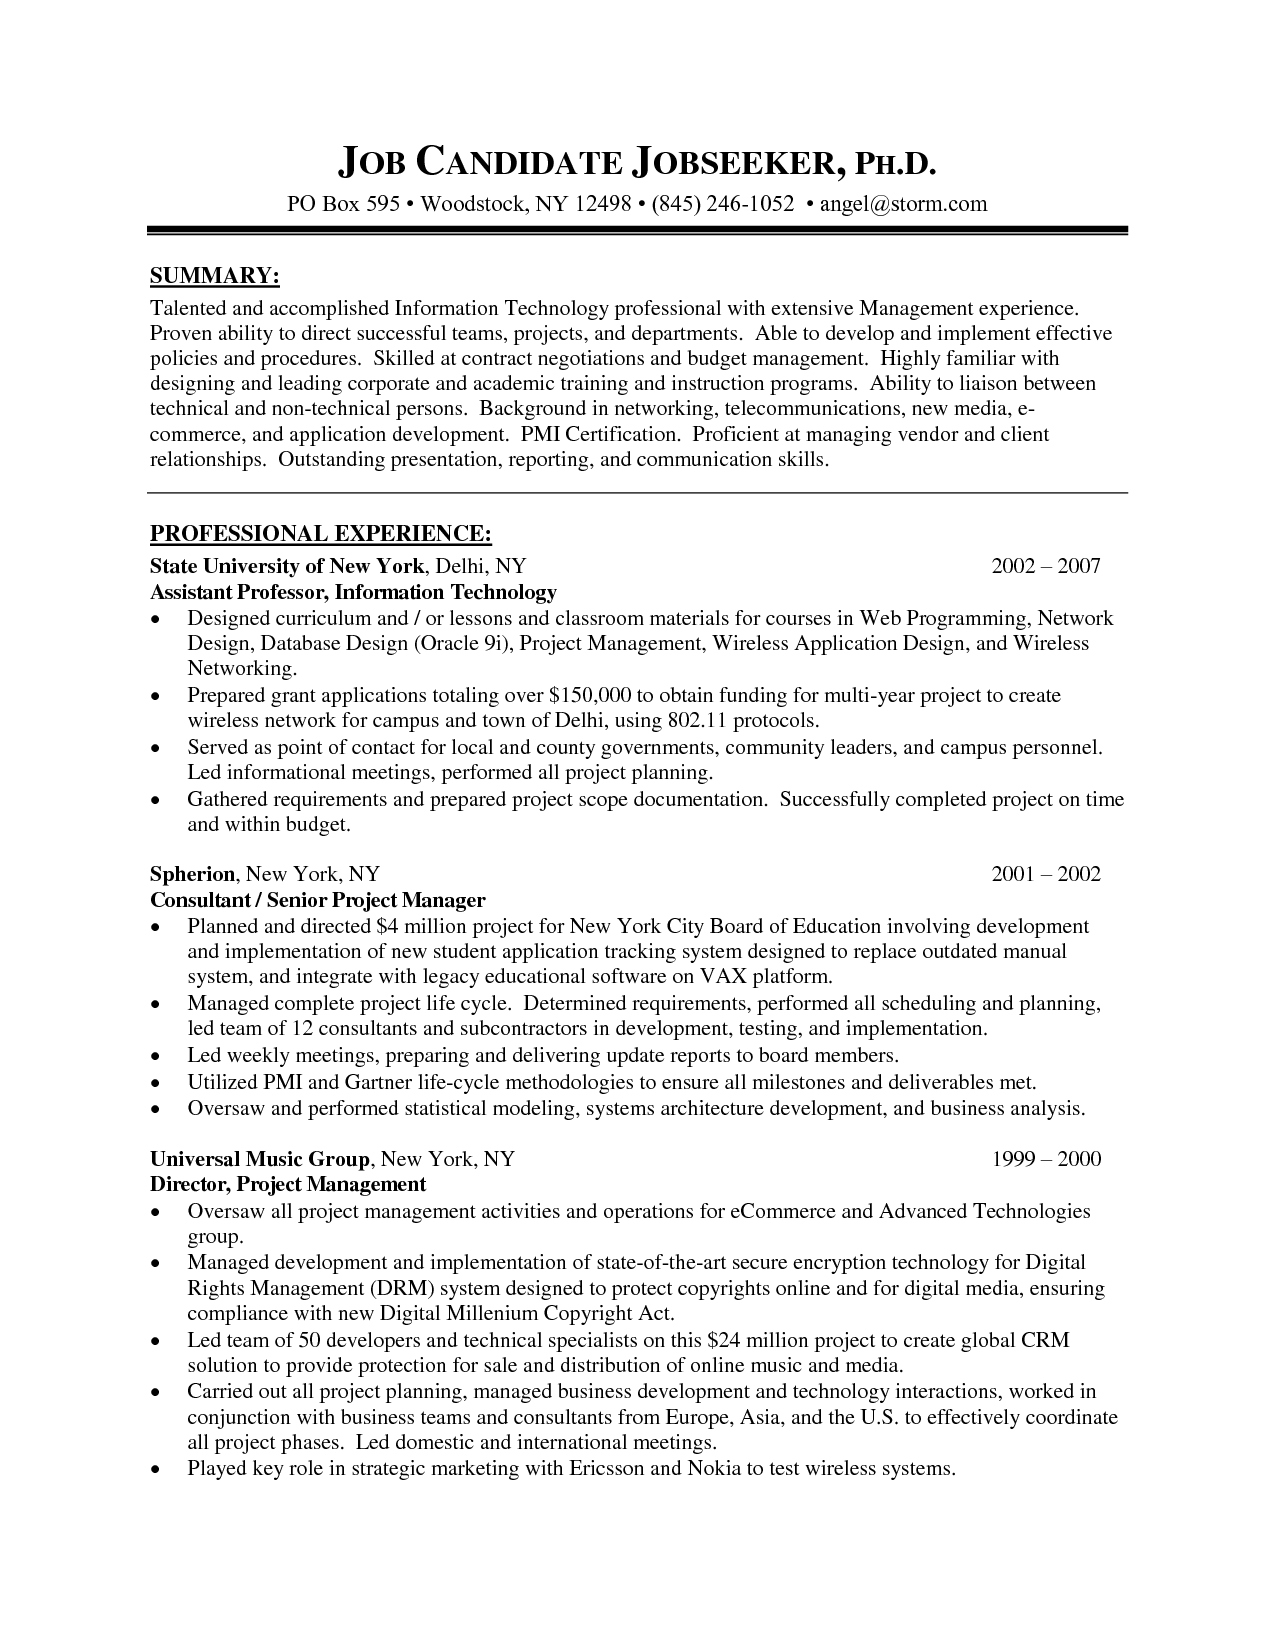 manager resume free sample senior project with summary examples compare writing services find local - Sample Project Manager Resumes